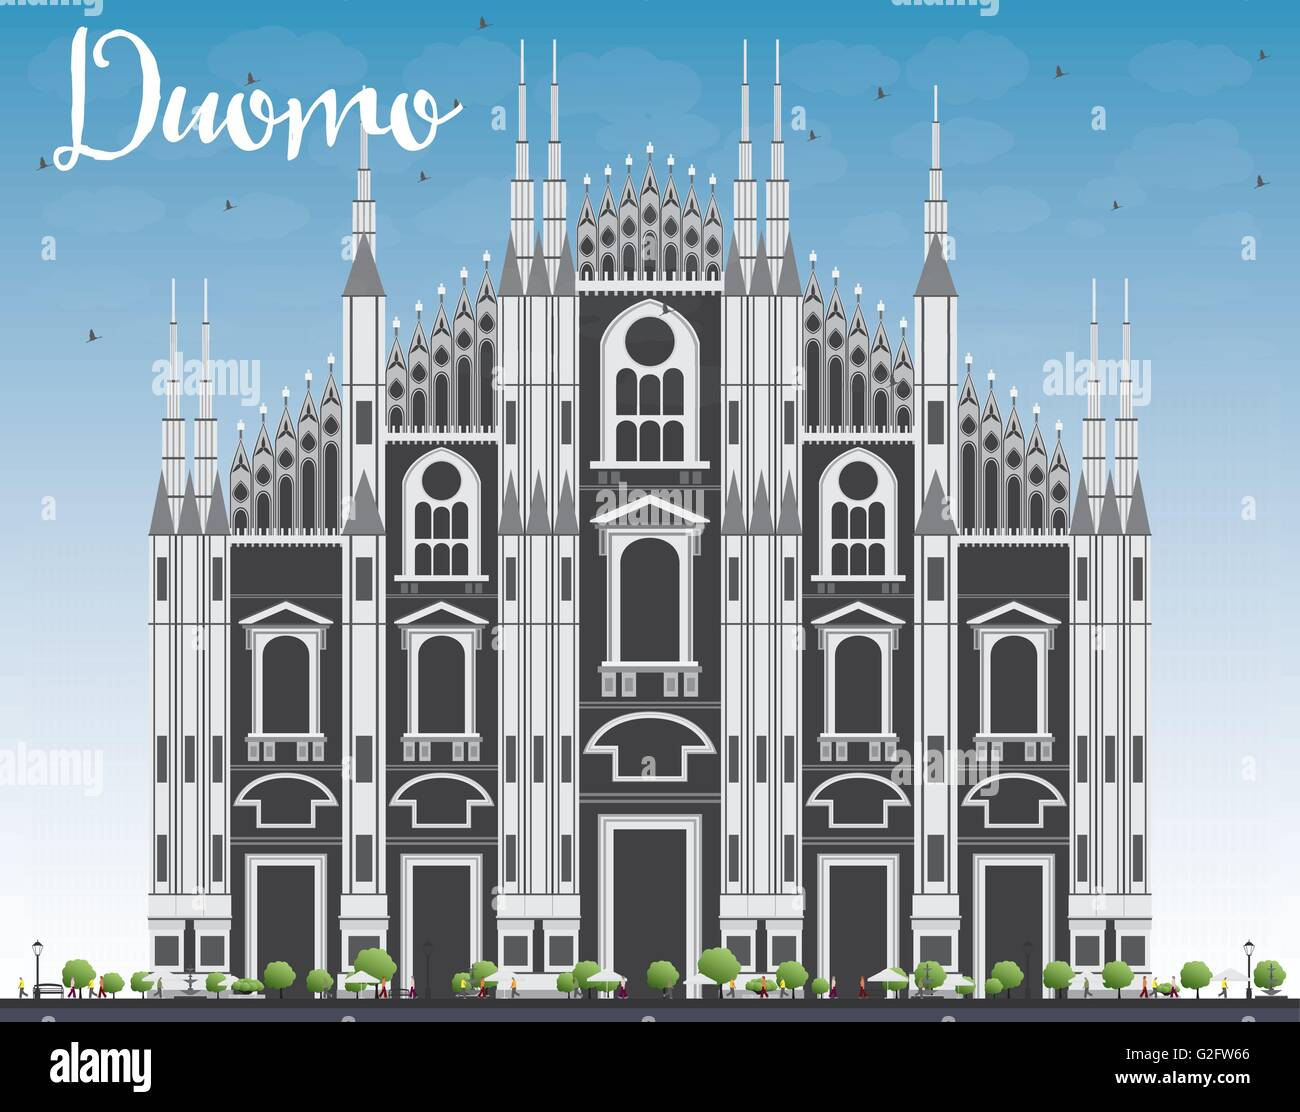 Duomo. Milan. Italy. Vector Illustration. Tourism Concept with Historic Building. Image for Presentation Banner - Stock Vector